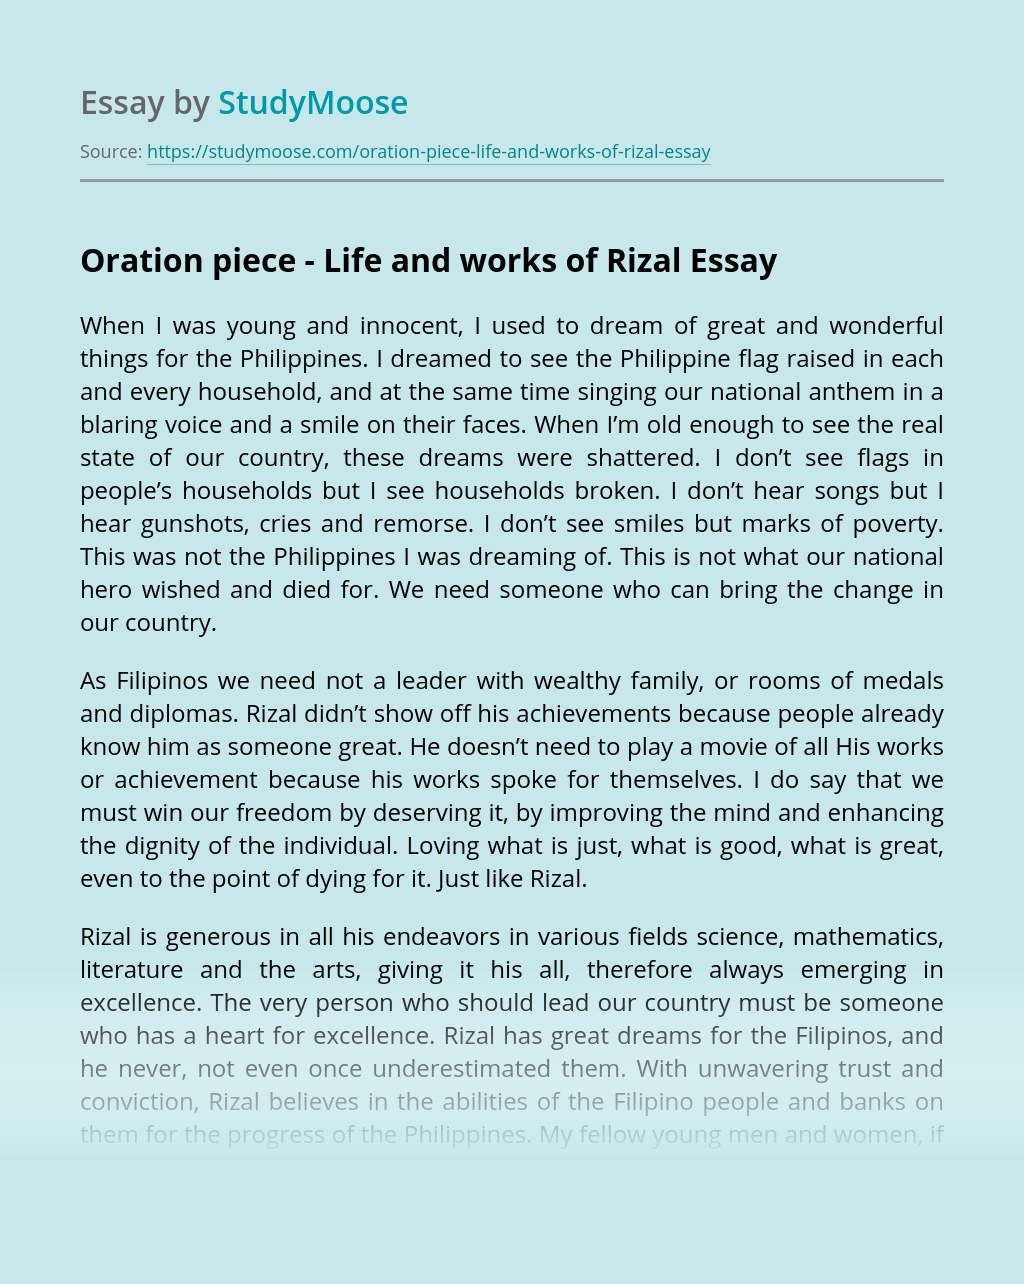 Oration piece - Life and works of Rizal